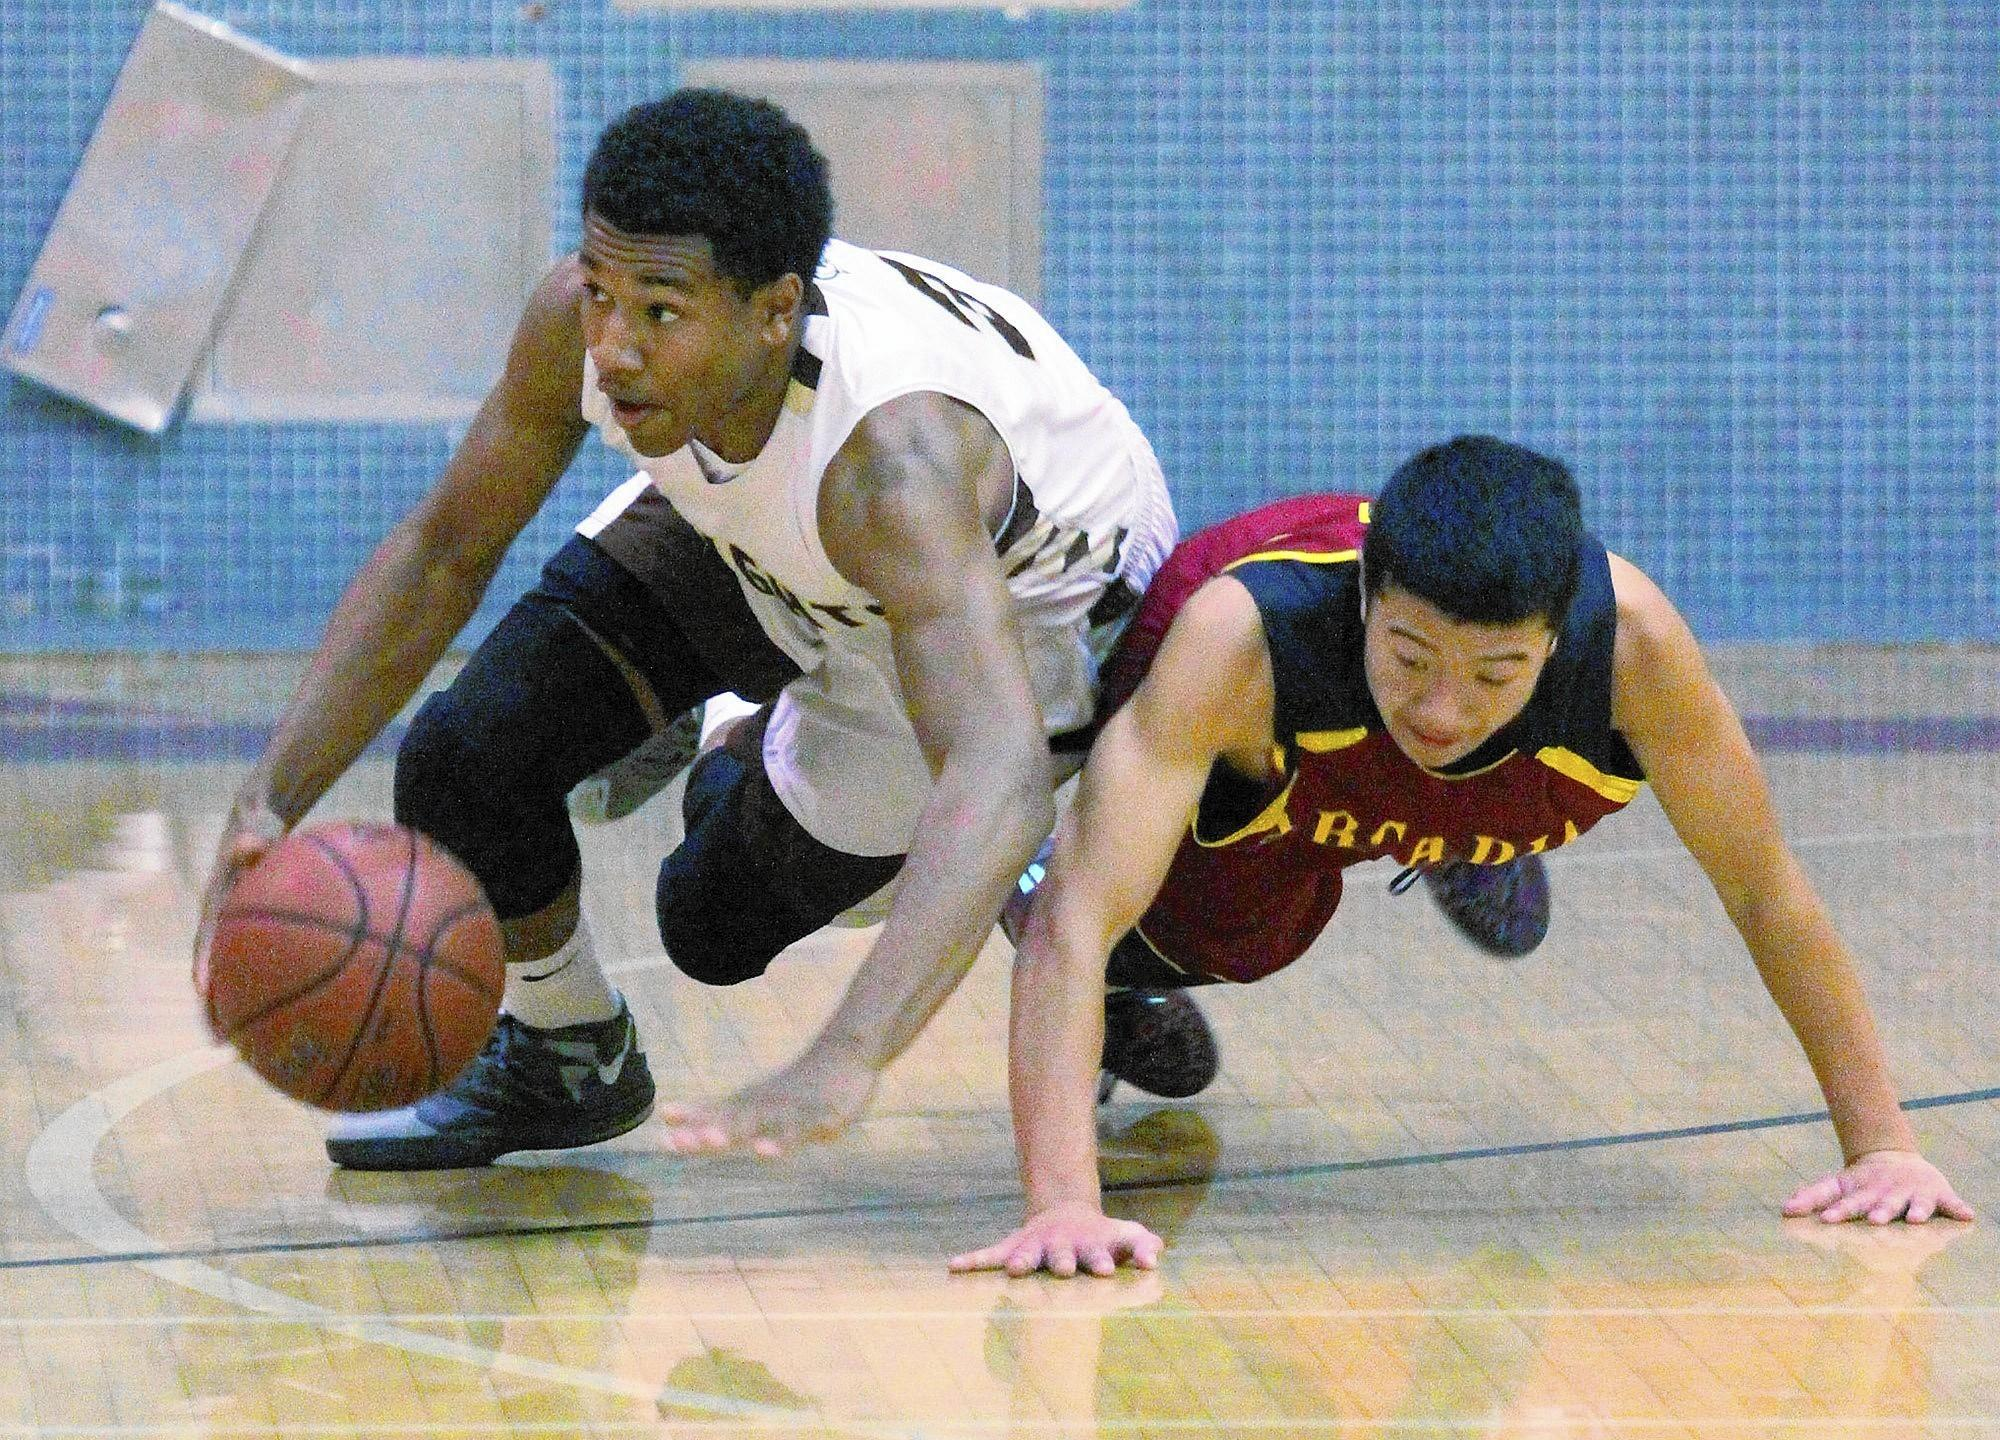 St. Francis' Kyle Leufroy dives for and gets a loose ball against Arcadia's Brendan Tran in the La Cañada Holiday Classic boys basketball tournament at La Cañada High School on Tuesday, December 17, 2013.